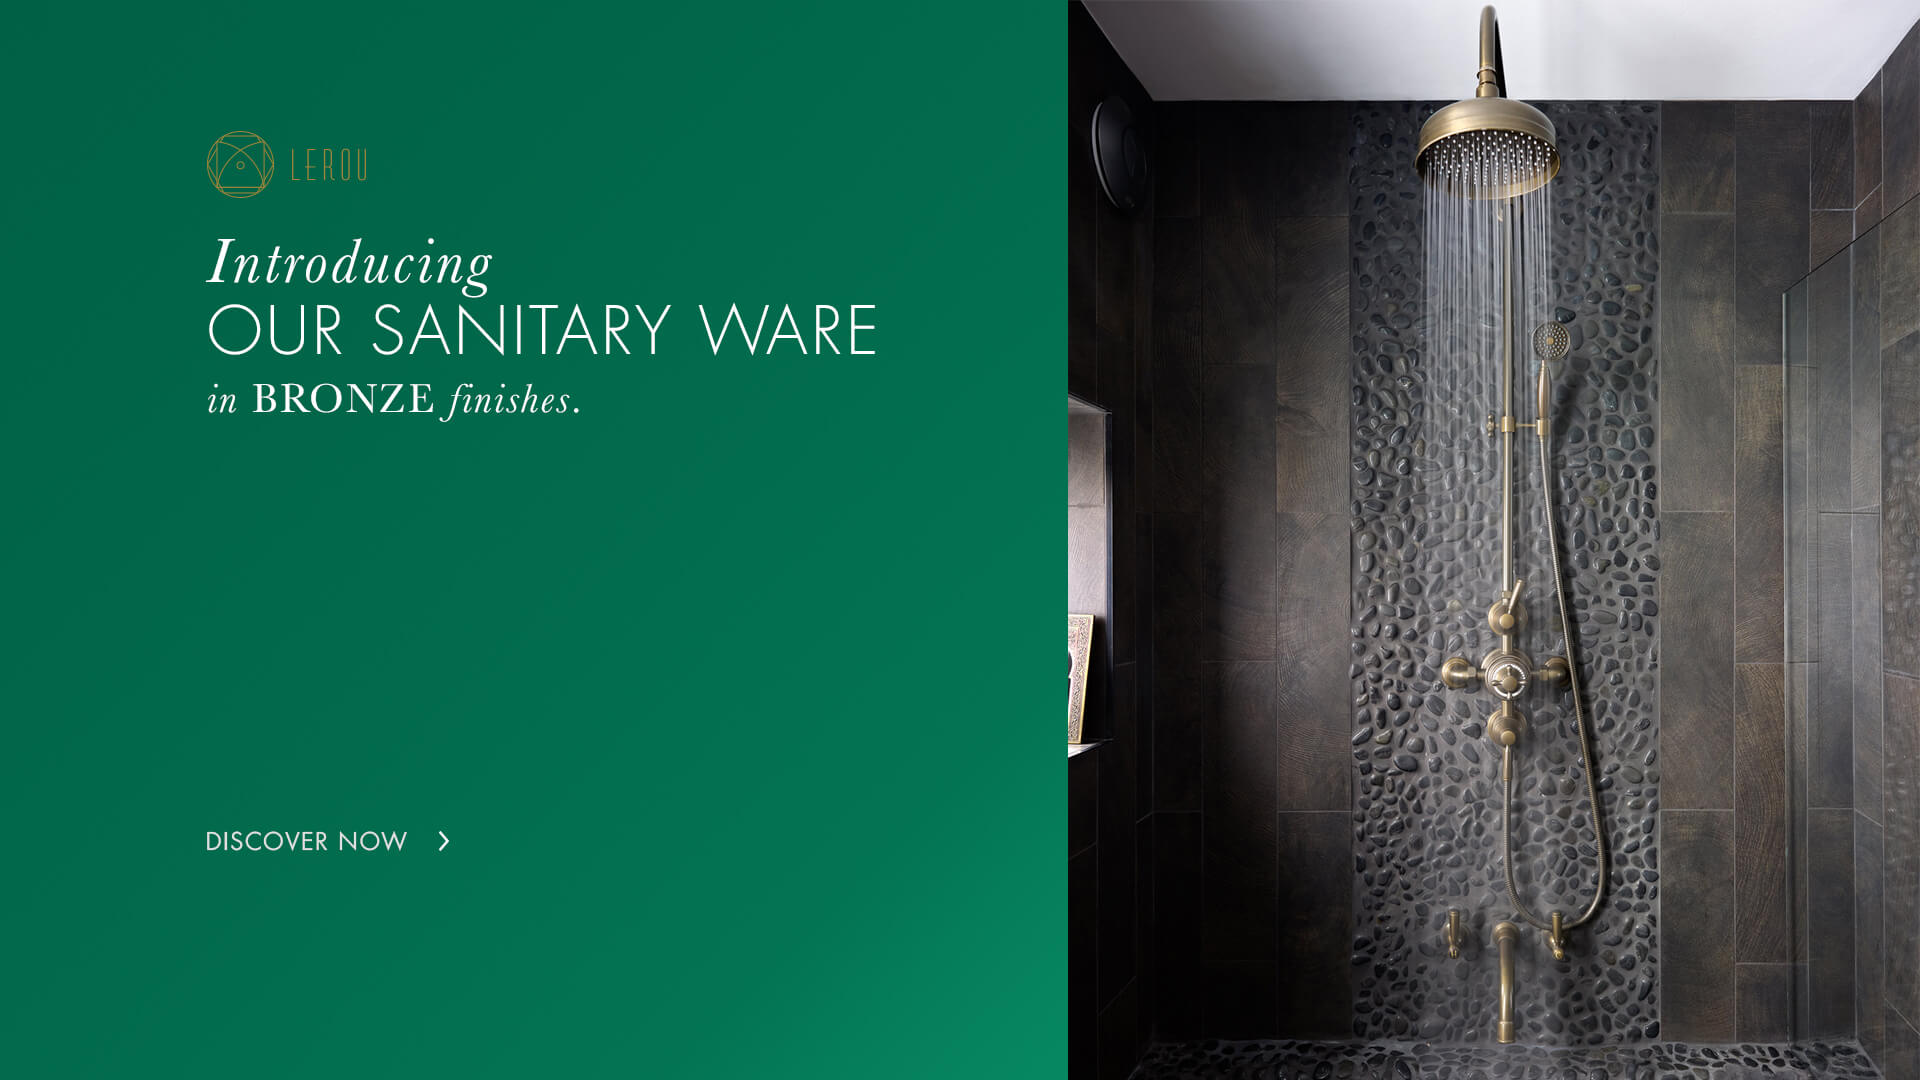 Lerou Sanitary Ware in Bronze Finishes. Lerou Sanitair in Brons.